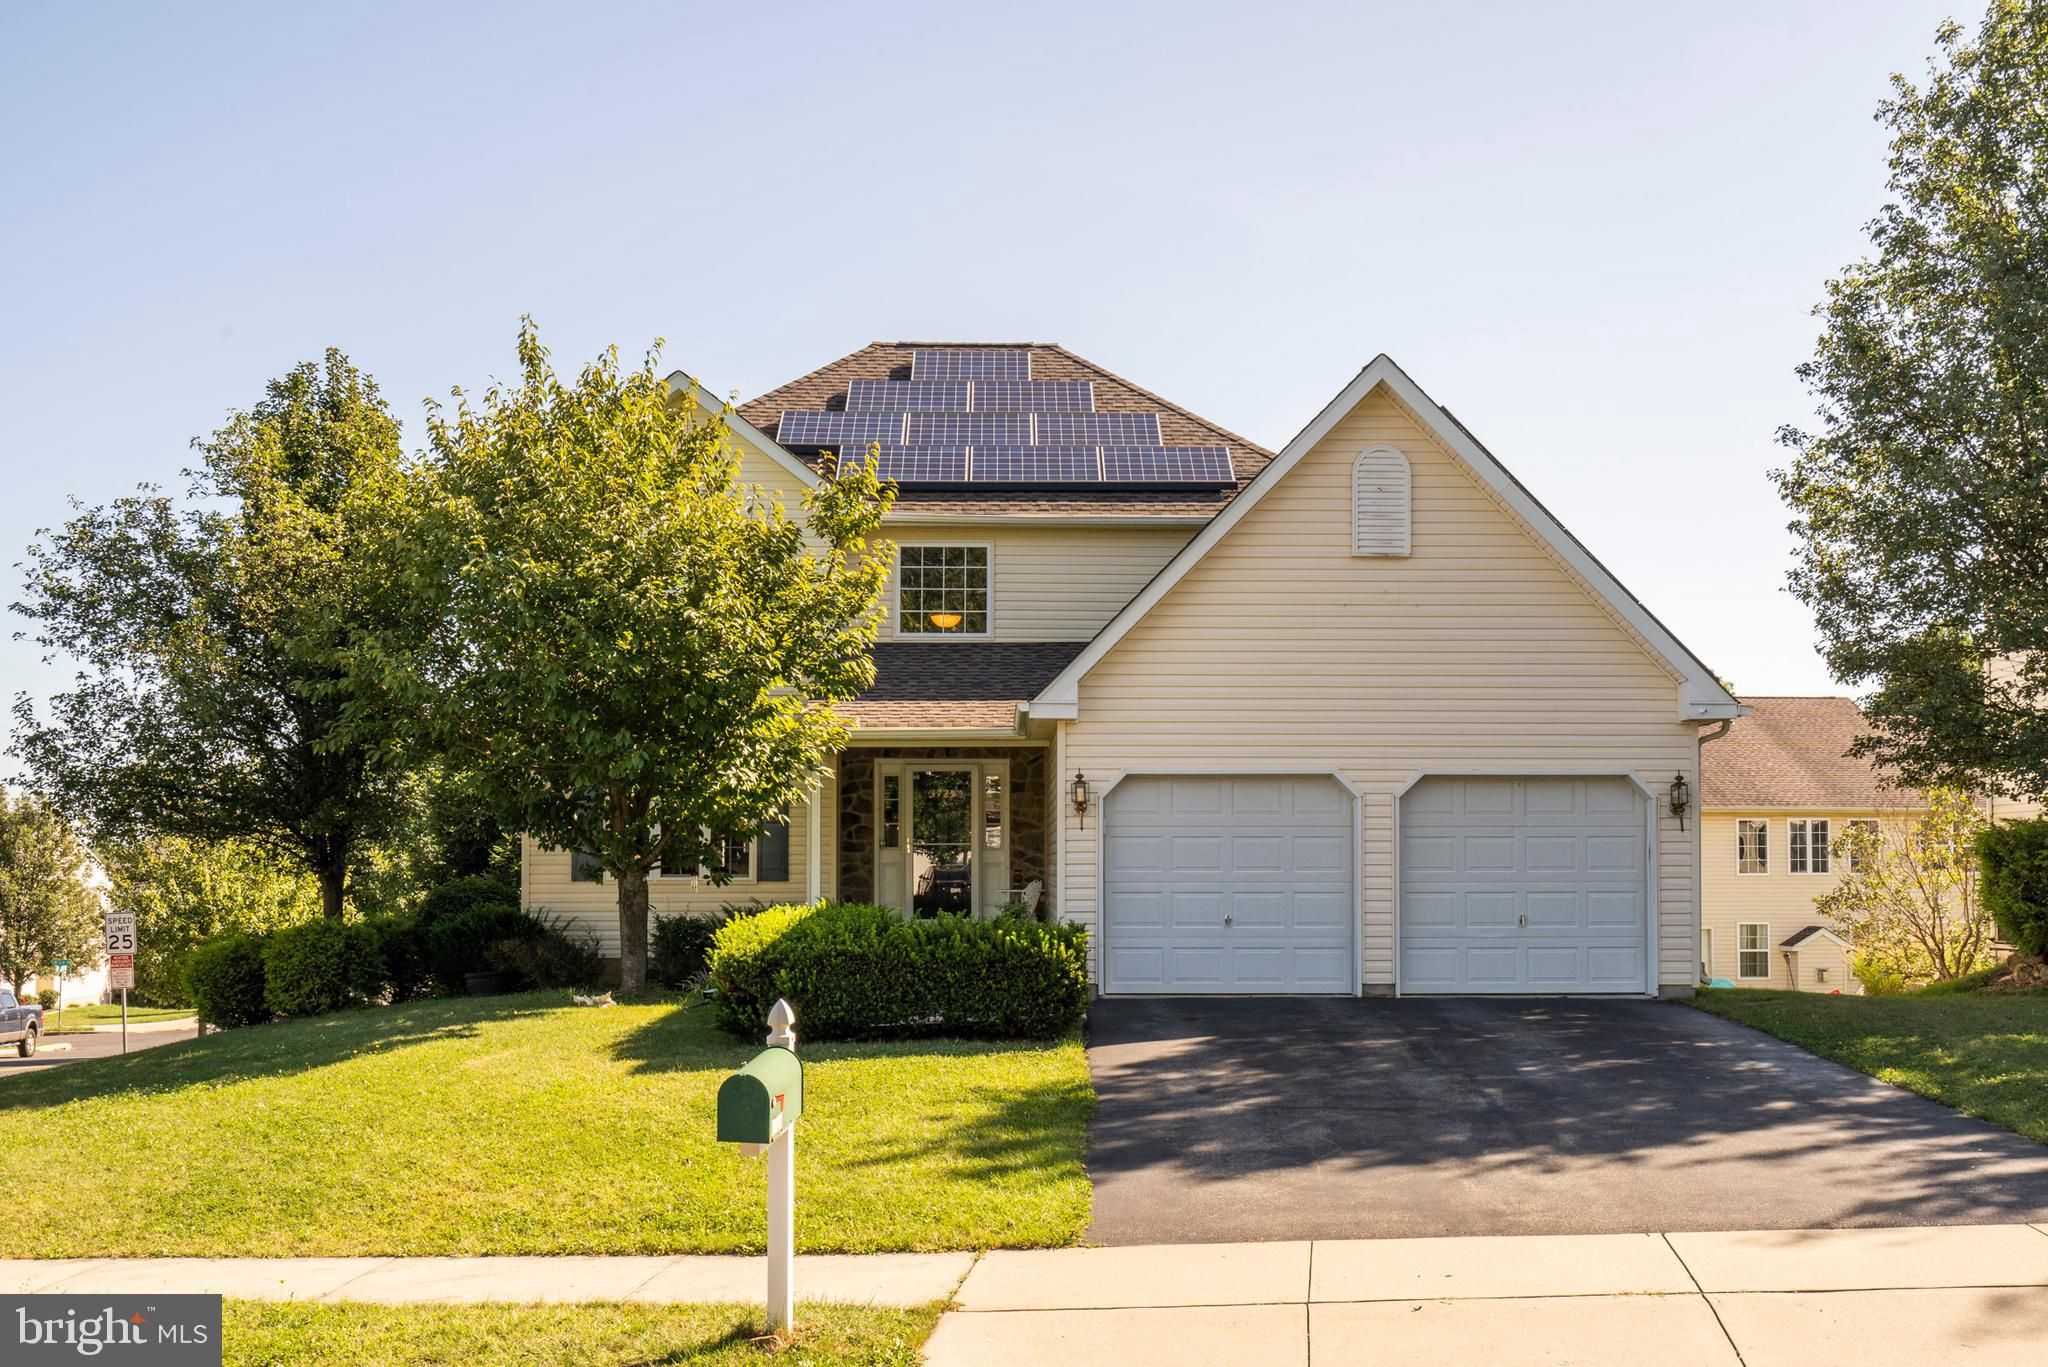 3725 CLAY DRIVE, MACUNGIE, PA 18062